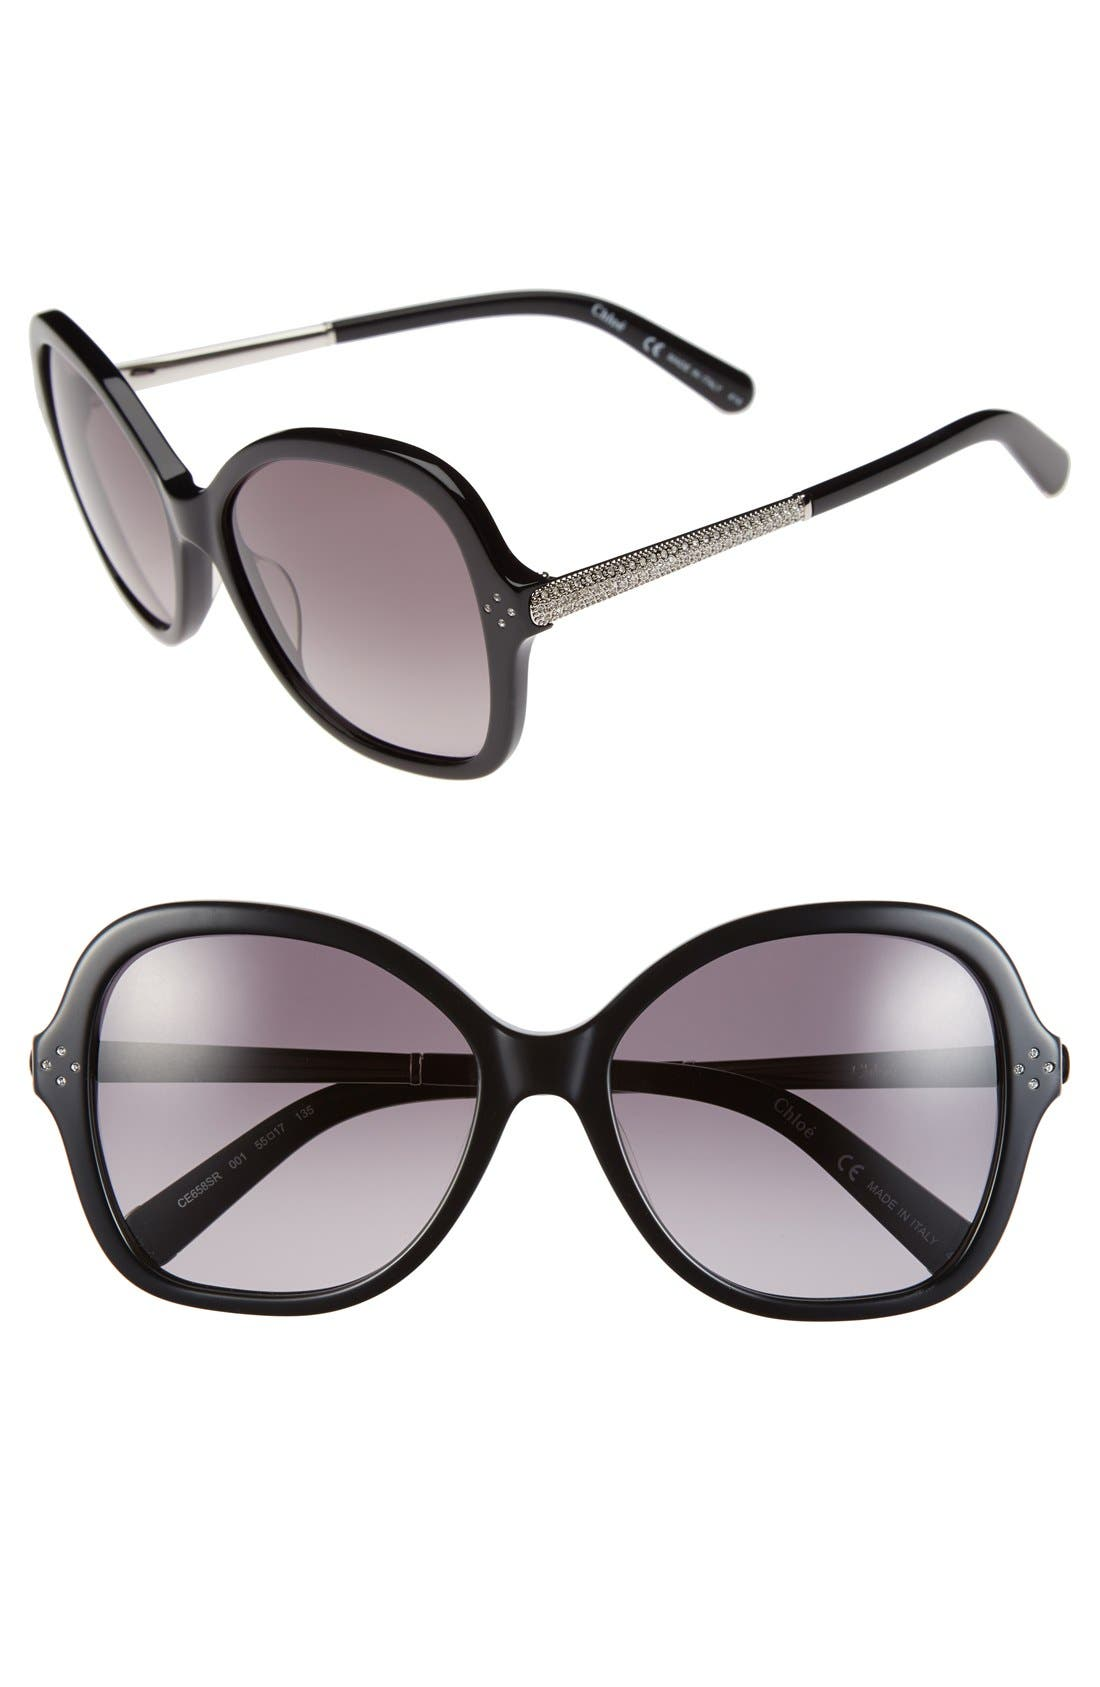 Main Image - Chloé 'Boxwood' 55mm Crystal Square Sunglasses